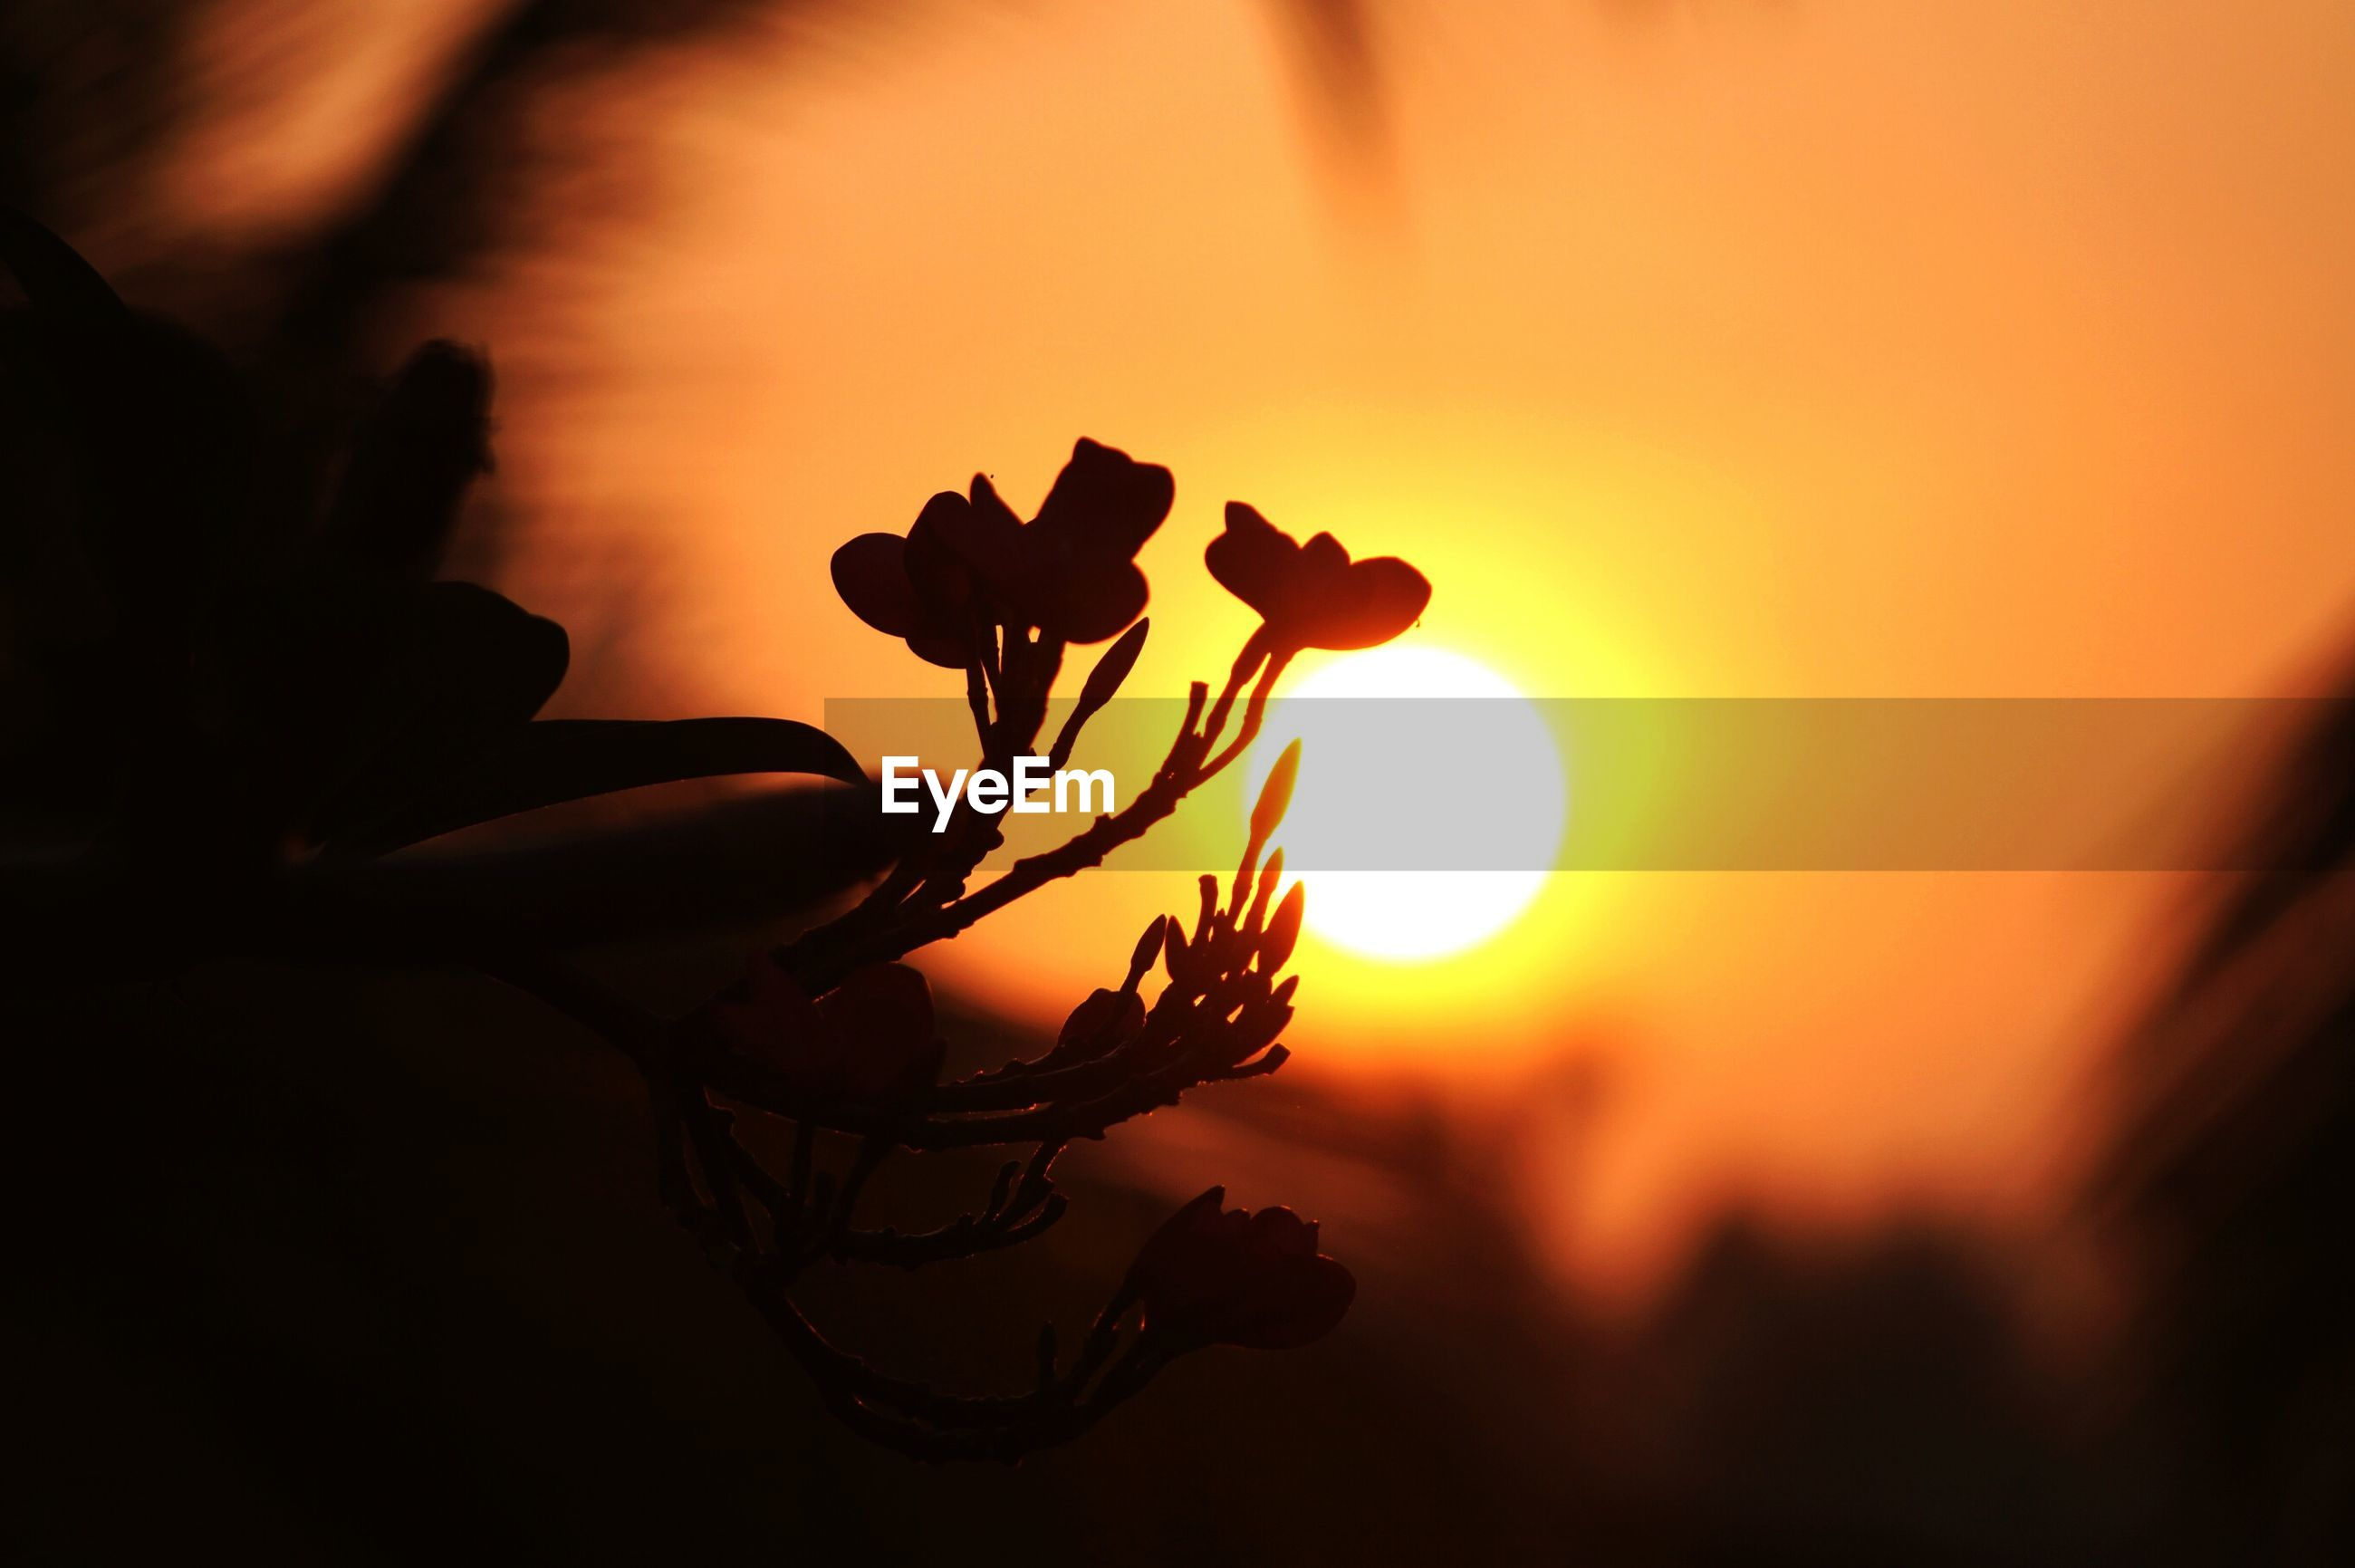 sunset, flower, close-up, silhouette, beauty in nature, fragility, focus on foreground, plant, petal, orange color, nature, growth, stem, sun, flower head, sky, selective focus, freshness, single flower, sunlight